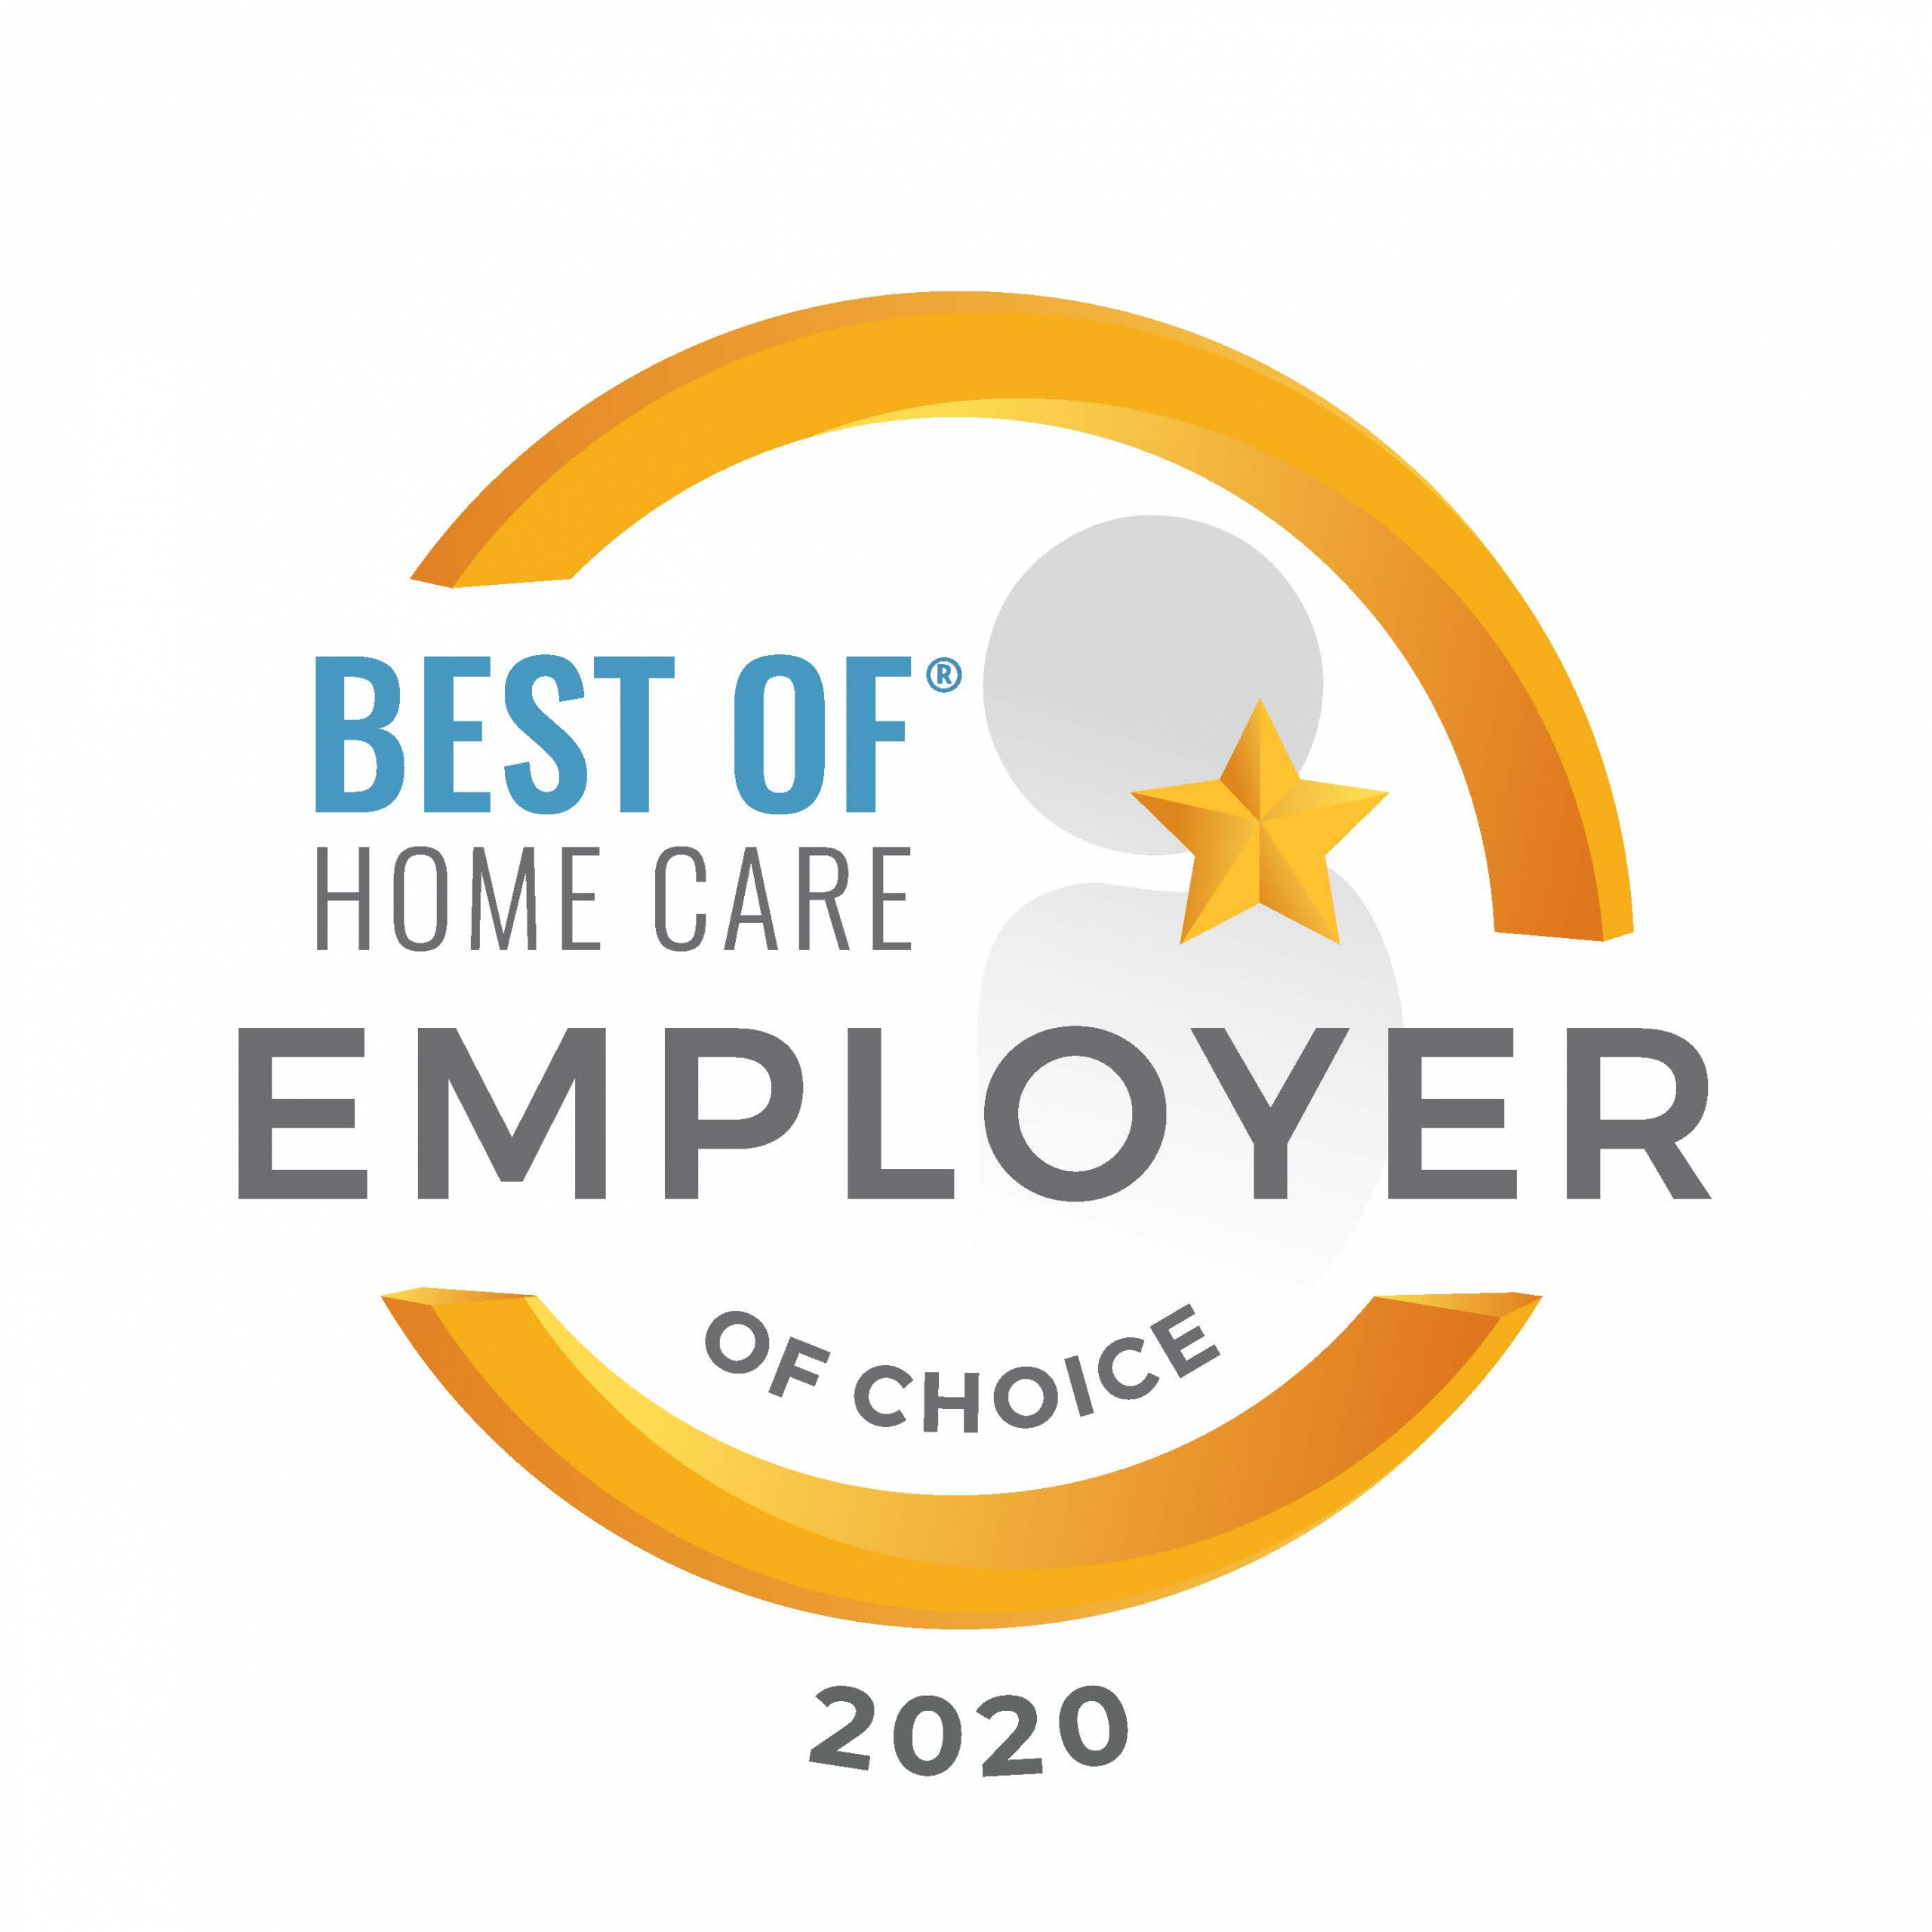 Best of Home Care Employer of Choice 2020 Award